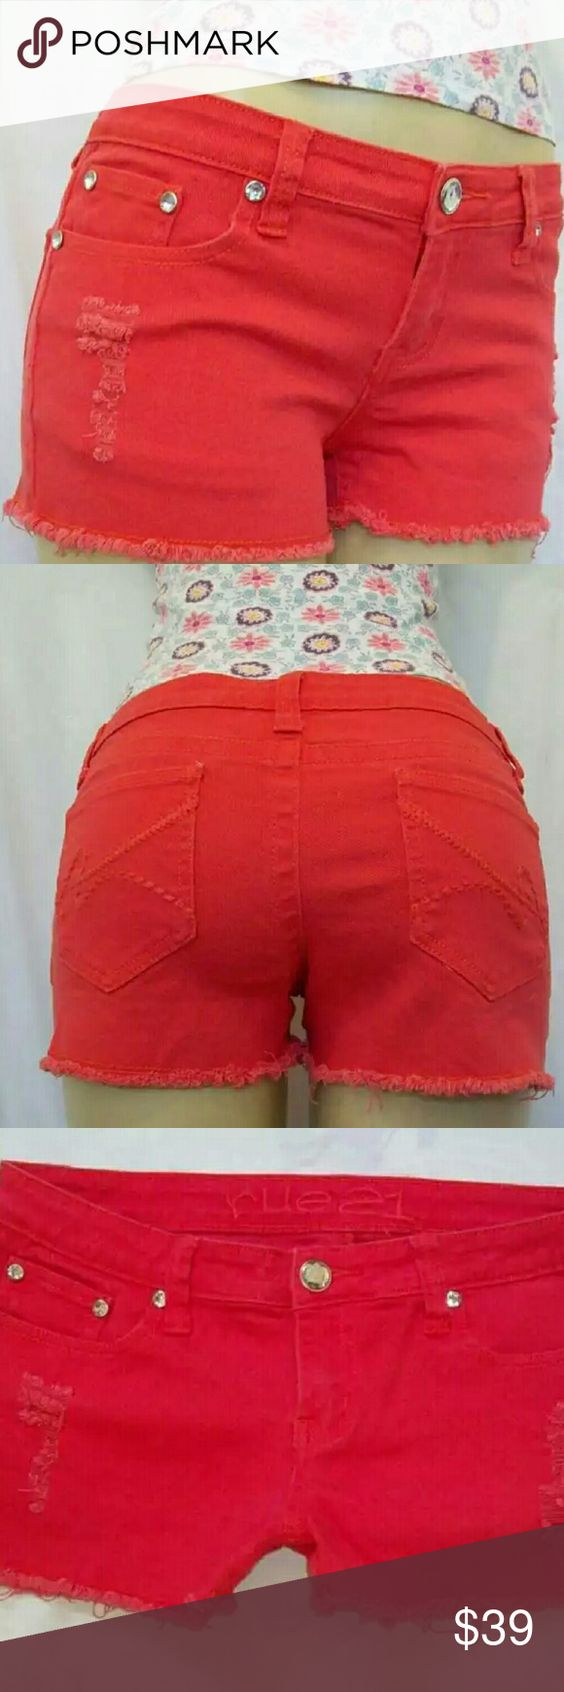 RUE 21 , DENIM CORAL DISTRESSED JEAN SHORTS NWOT DISTRESSED CIRAL COLORED SIZE 7/8 Rue 21 Shorts Jean Shorts